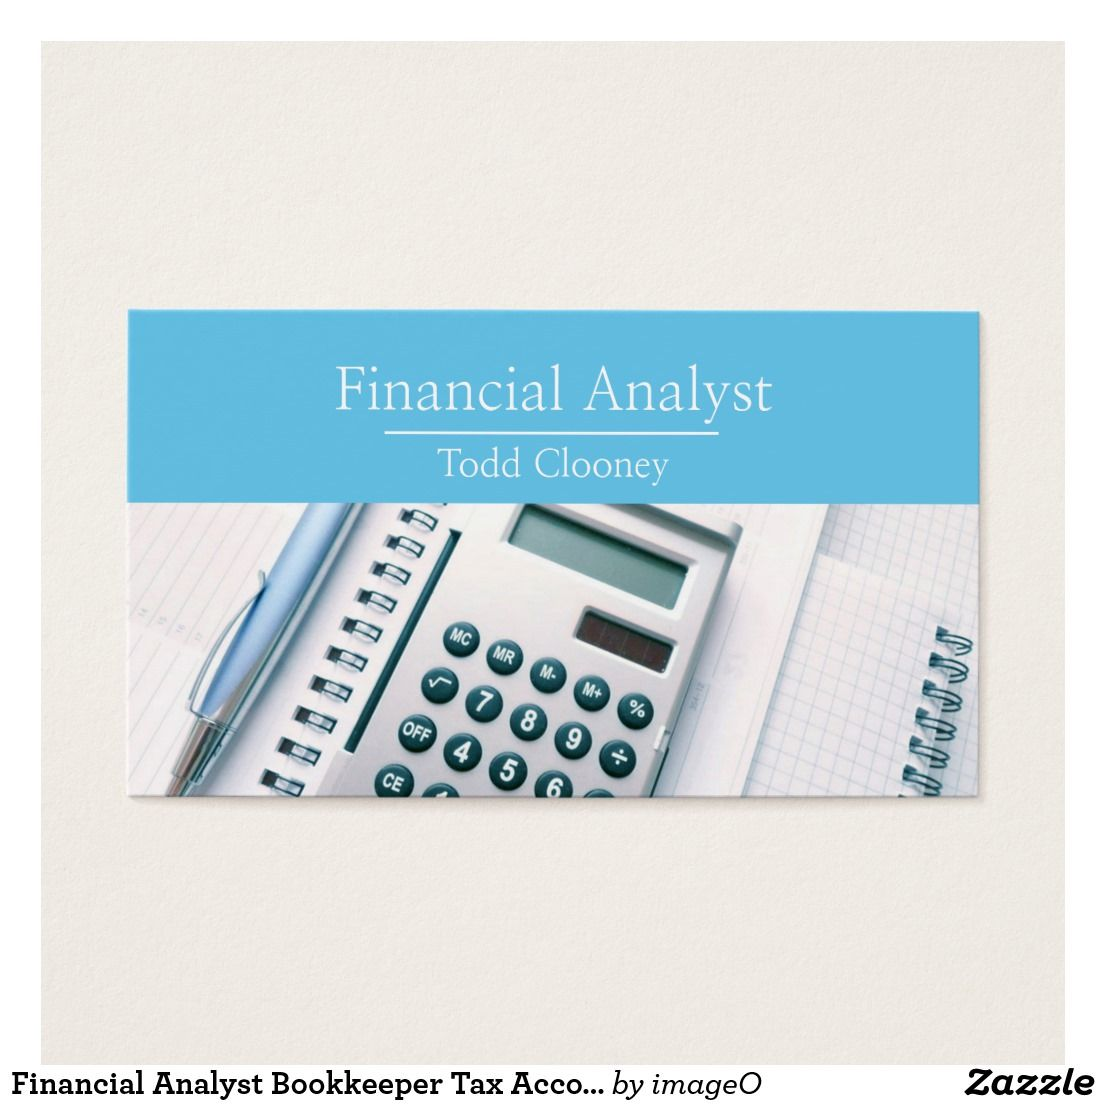 Financial Analyst Bookkeeper Tax Accountant Business Card | Business ...